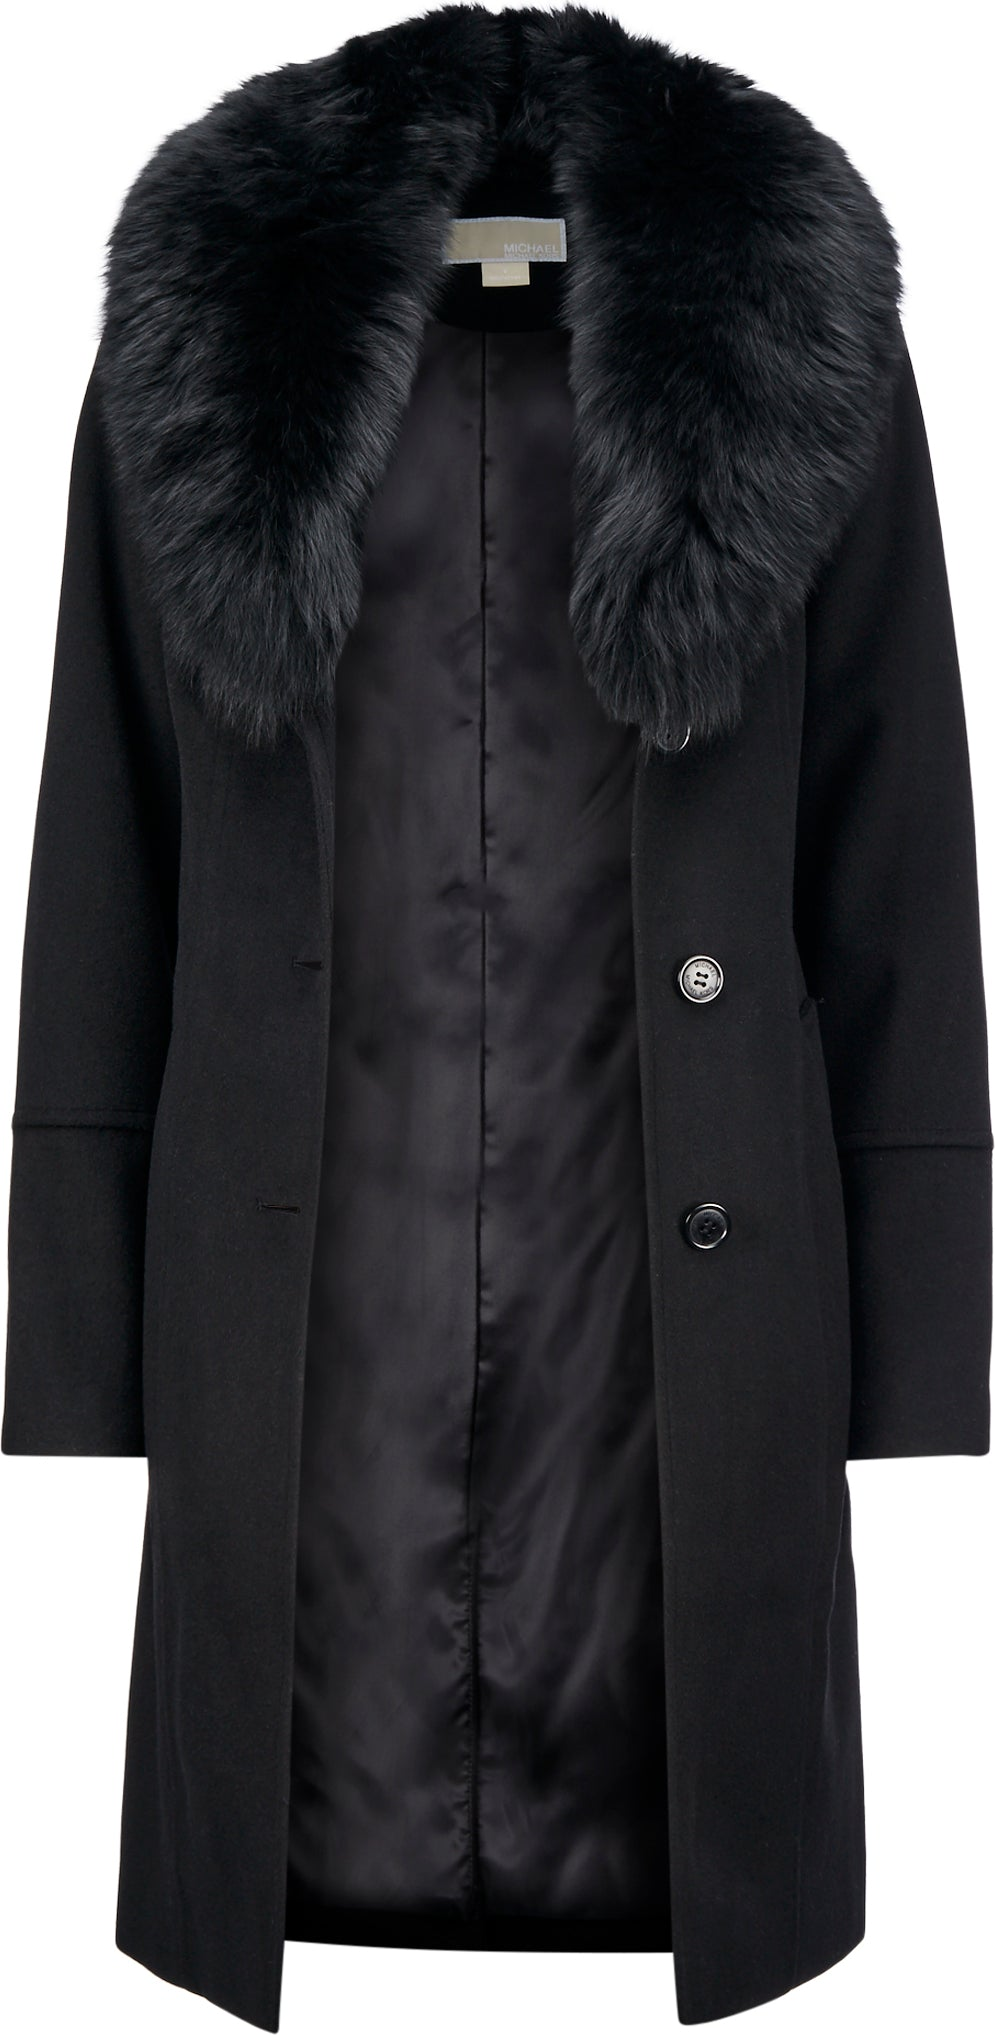 new collection search for original complimentary shipping Michael Kors Wool-Blend Fur-Collar Coat - Women's